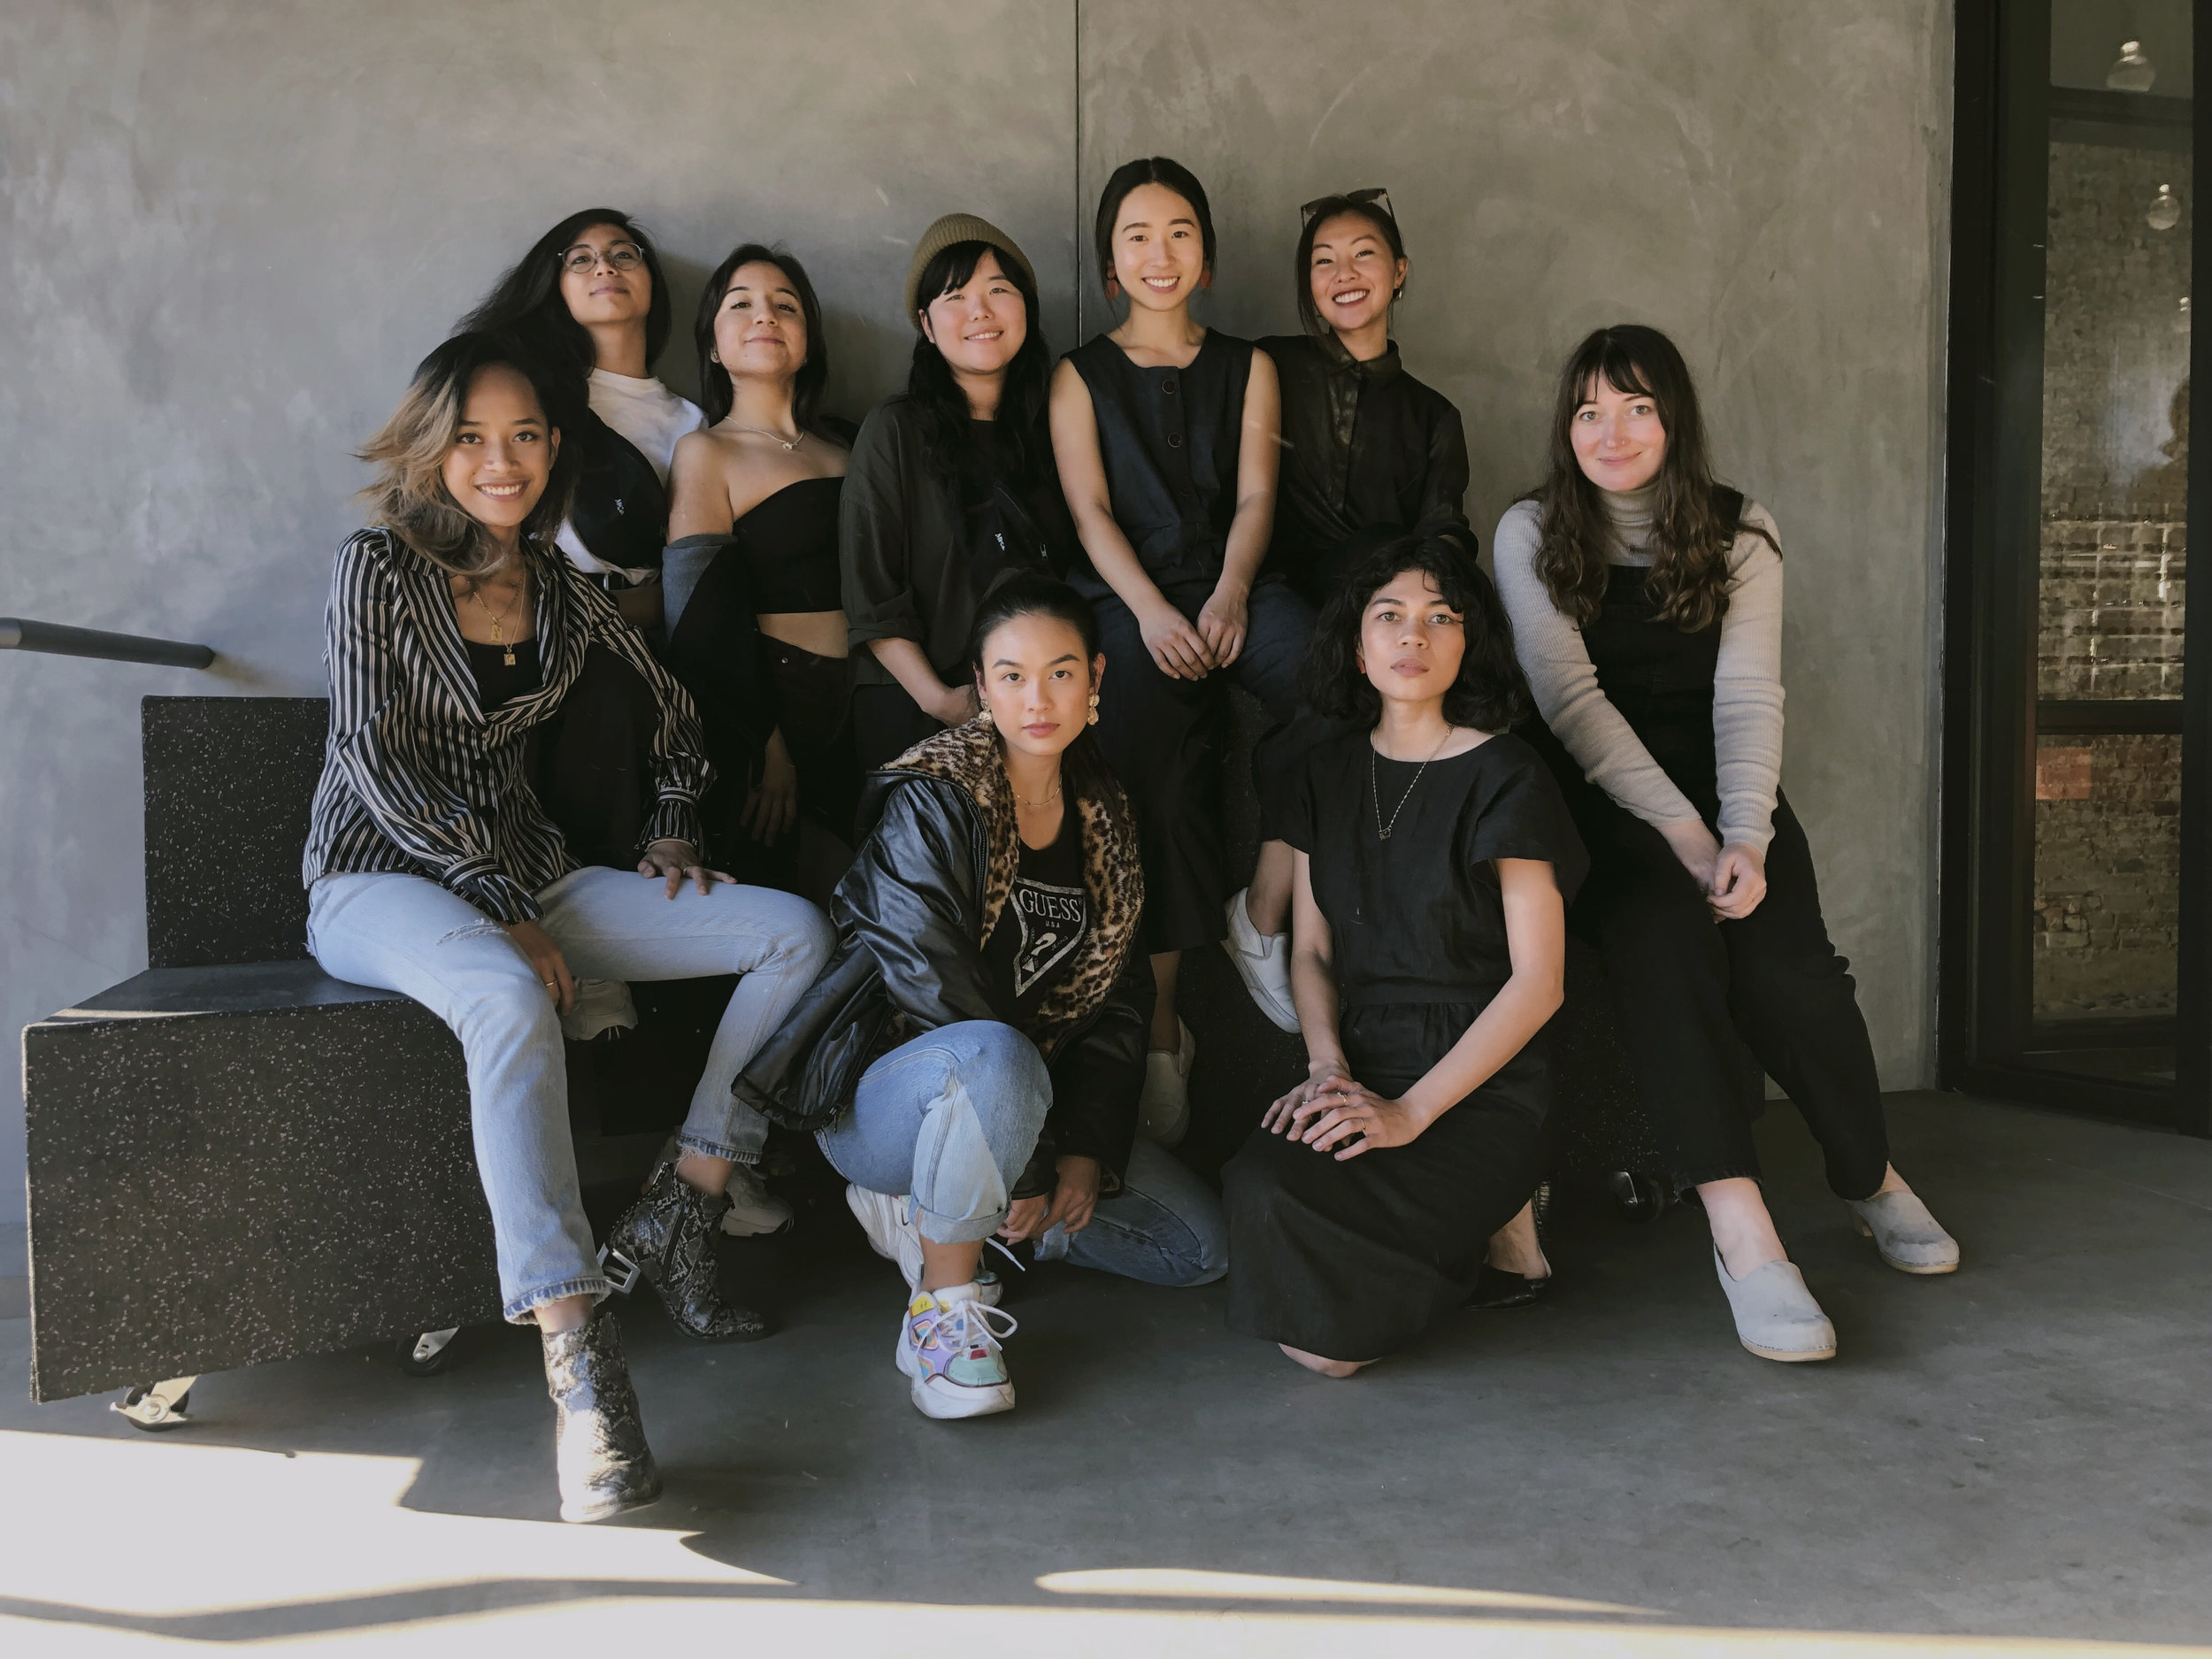 (Top left to bottom right) Avery Antonio, Mayra Moran, Jenny Nayoung, Sarina Ho, Tiffany Wong, Indah, Adi Alice, Diane Diaz, Alyssa Julian. (Taken by: Christopher Caspe)